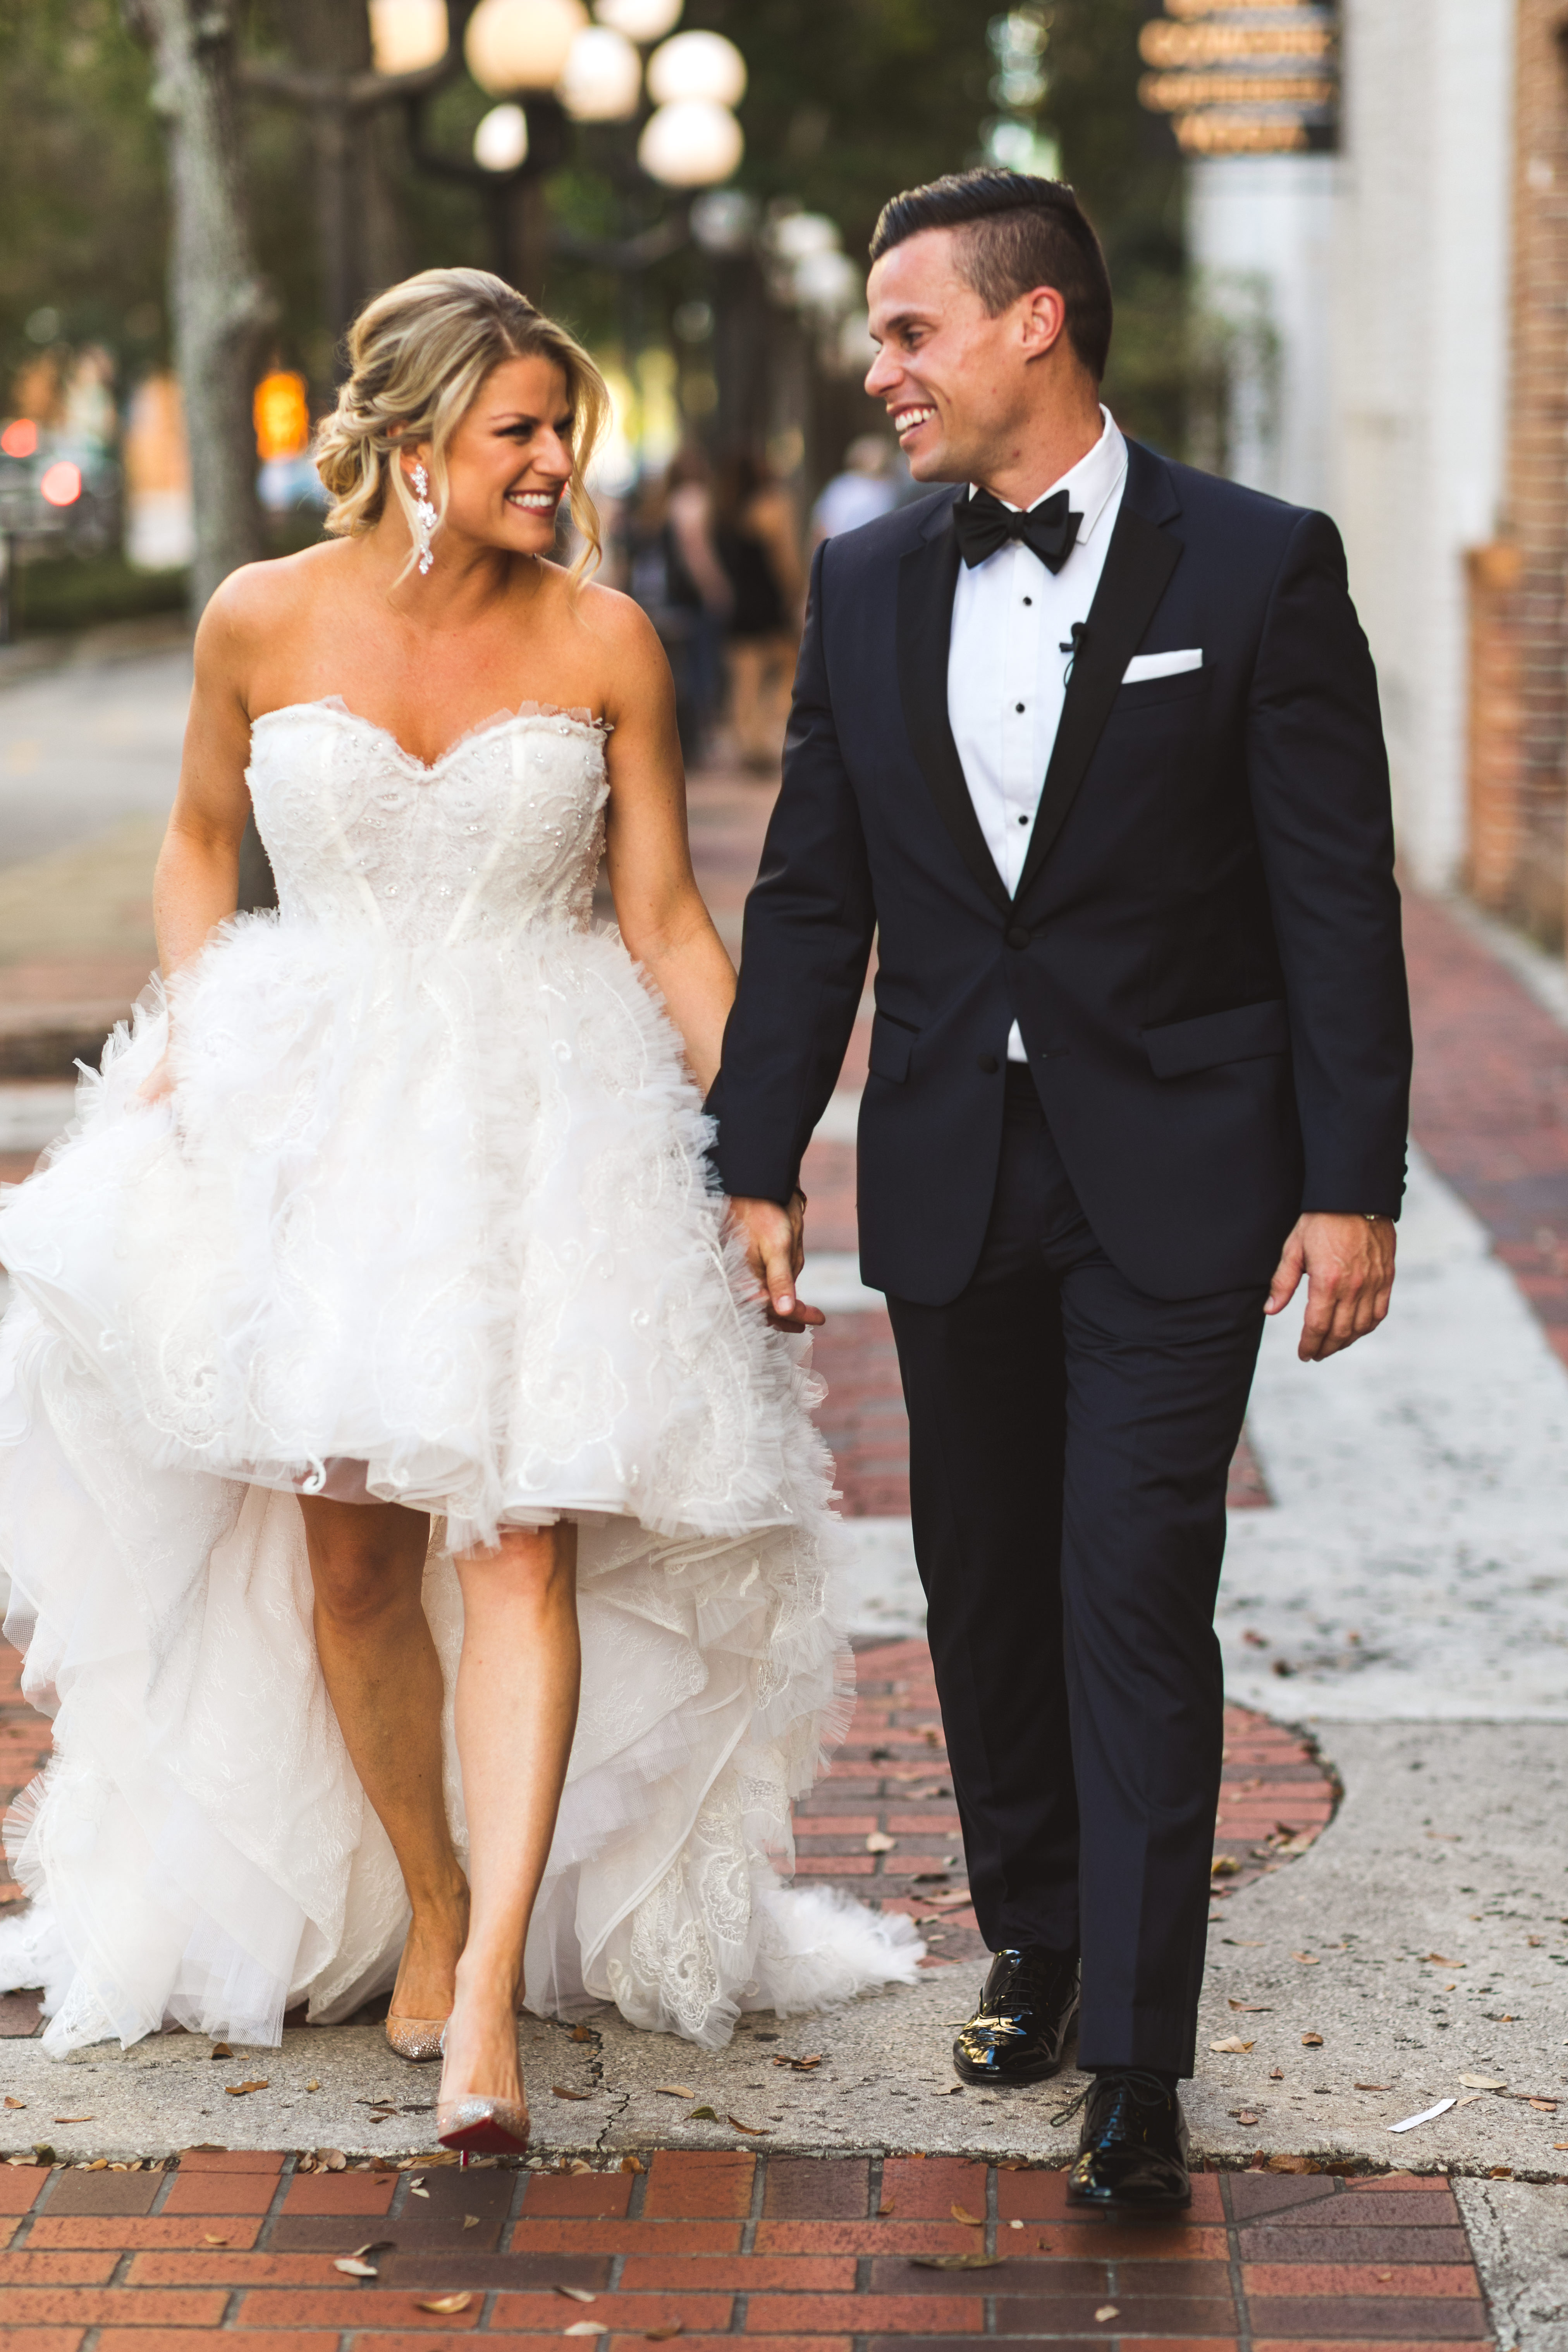 Modern Bride and Groom Holding Hands Wedding Portrait, Bride in Ruffle High Low Skirt Strapless Sweetheart Wedding Dress, Groom in Black Tuxedo   Ines DiSanto Wedding Dress Isabel O'Neil Bridal Collection